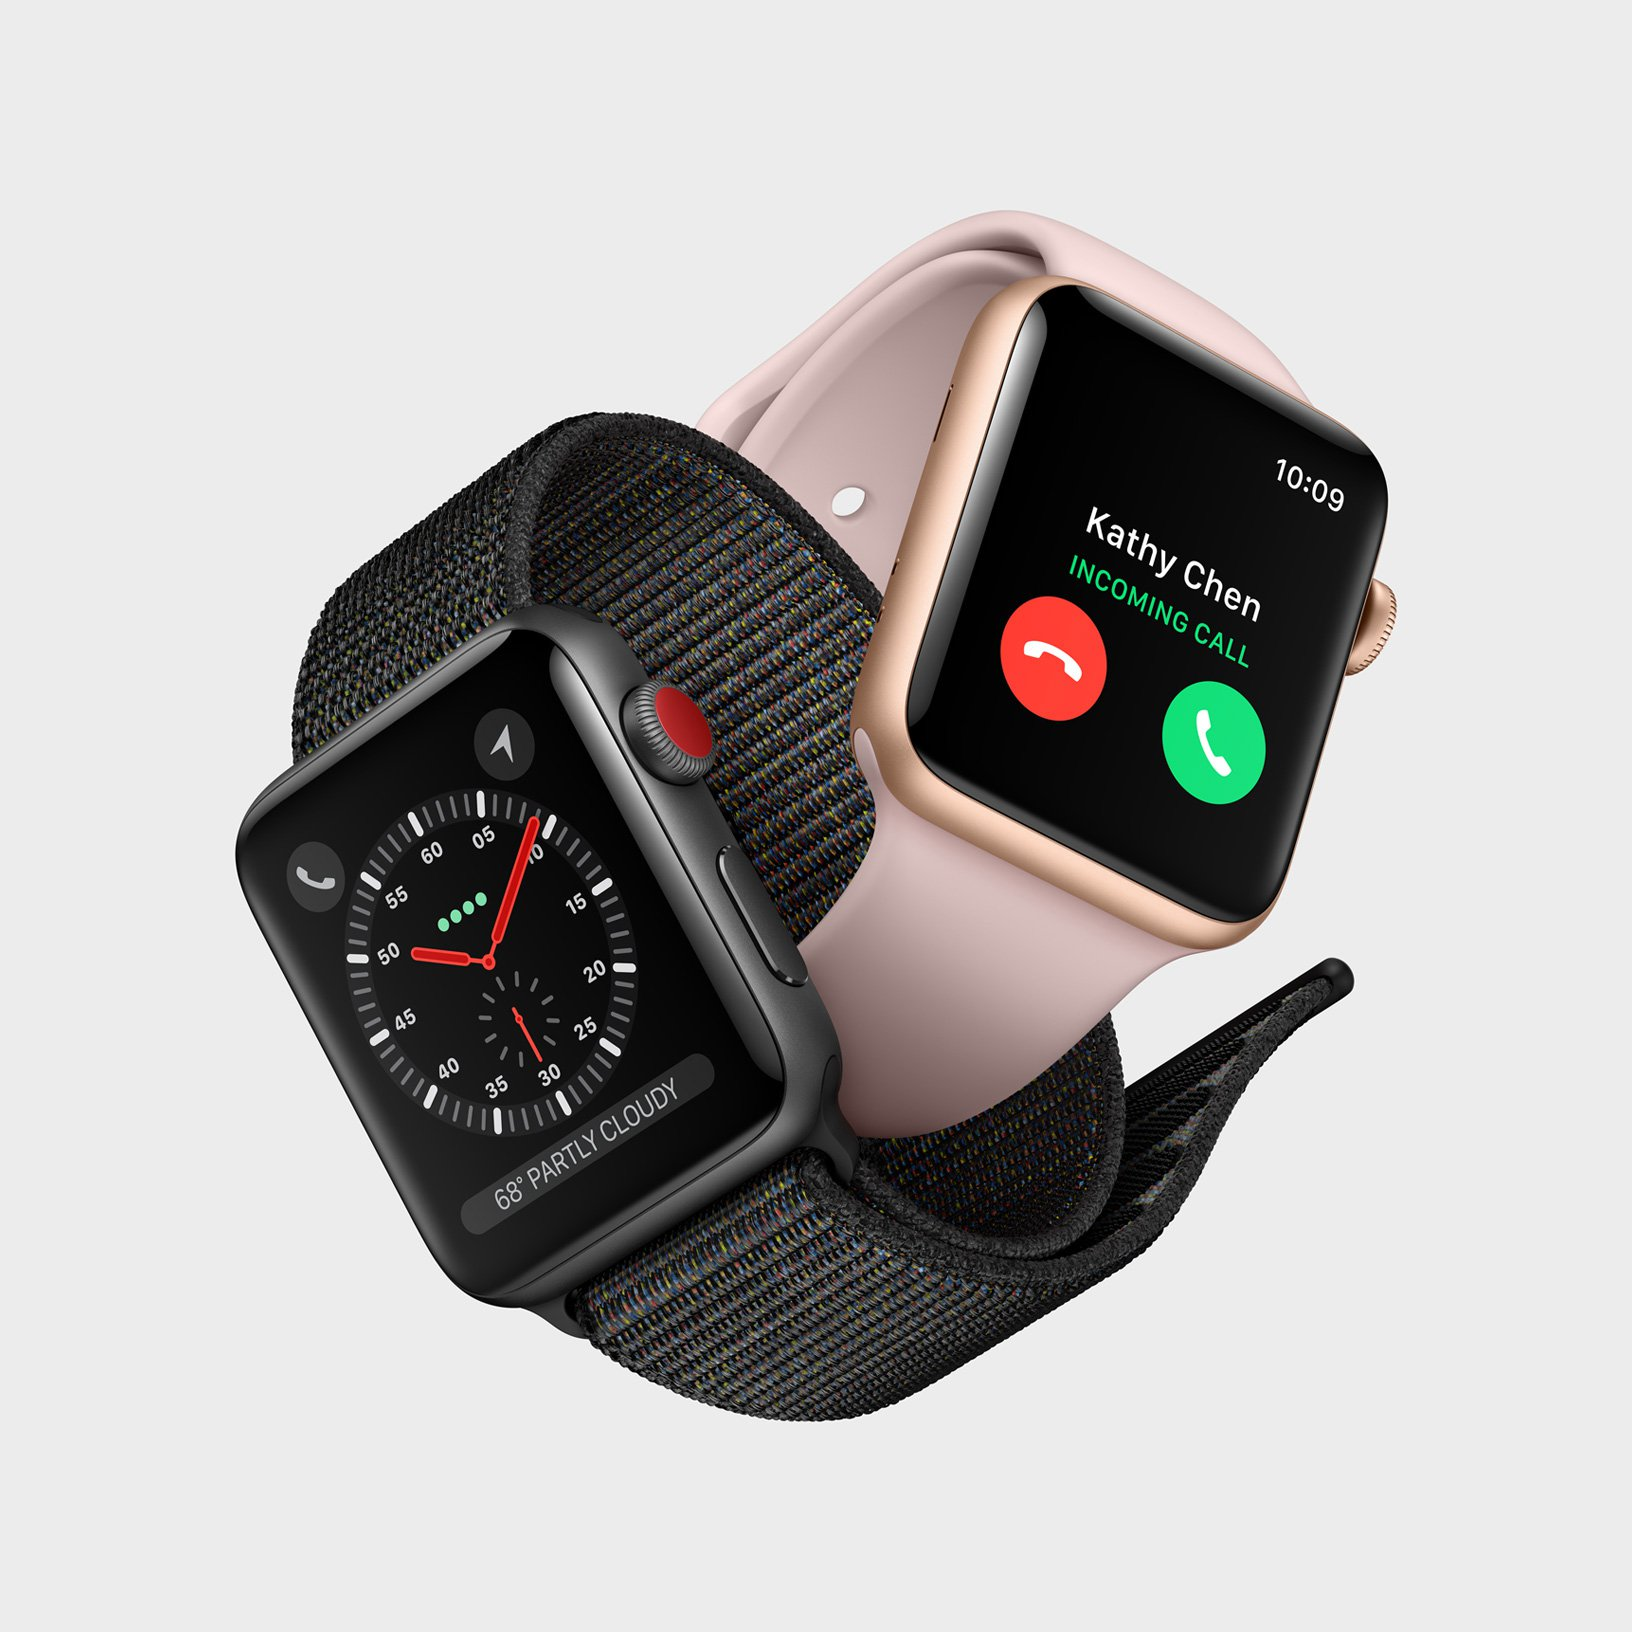 c9b8b964ab1 Apple Watch - Relógios e Relojoaria